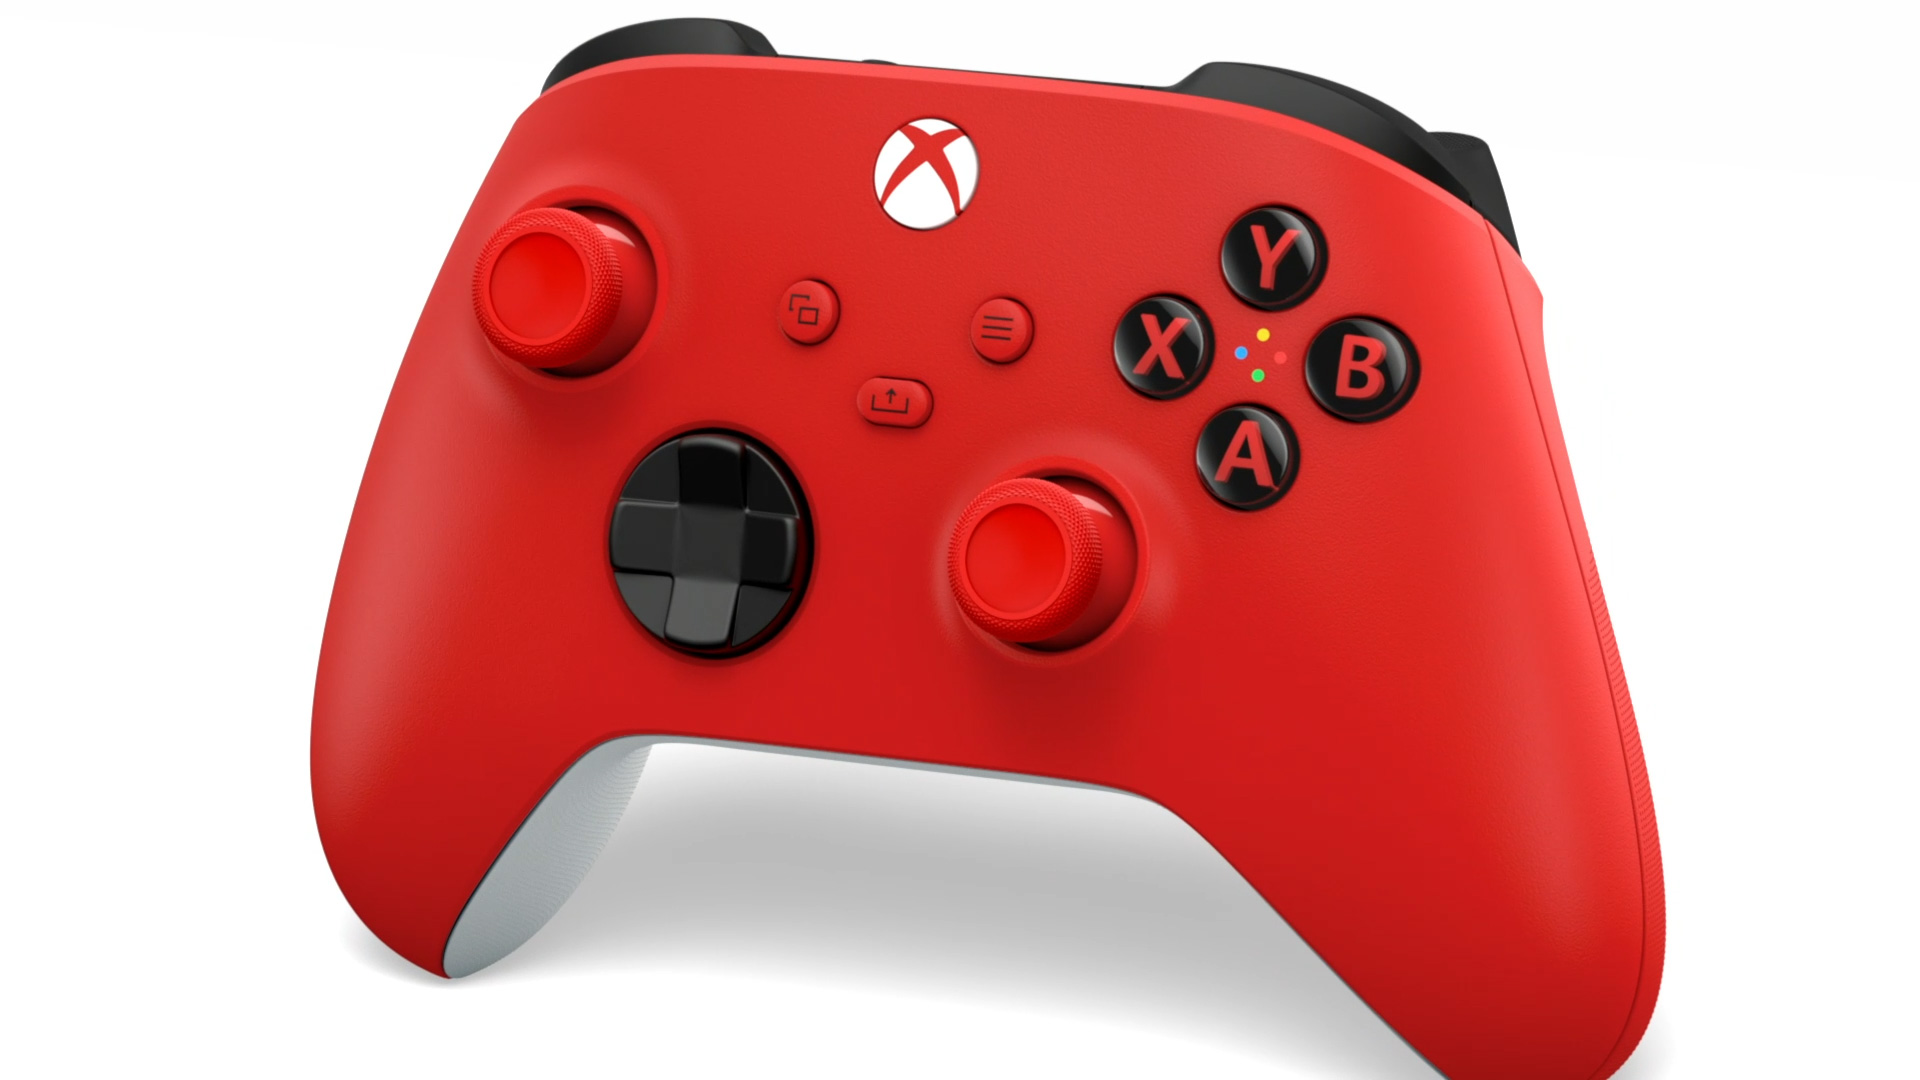 The next Xbox controller is Pulse Red and it's shipping in February screenshot